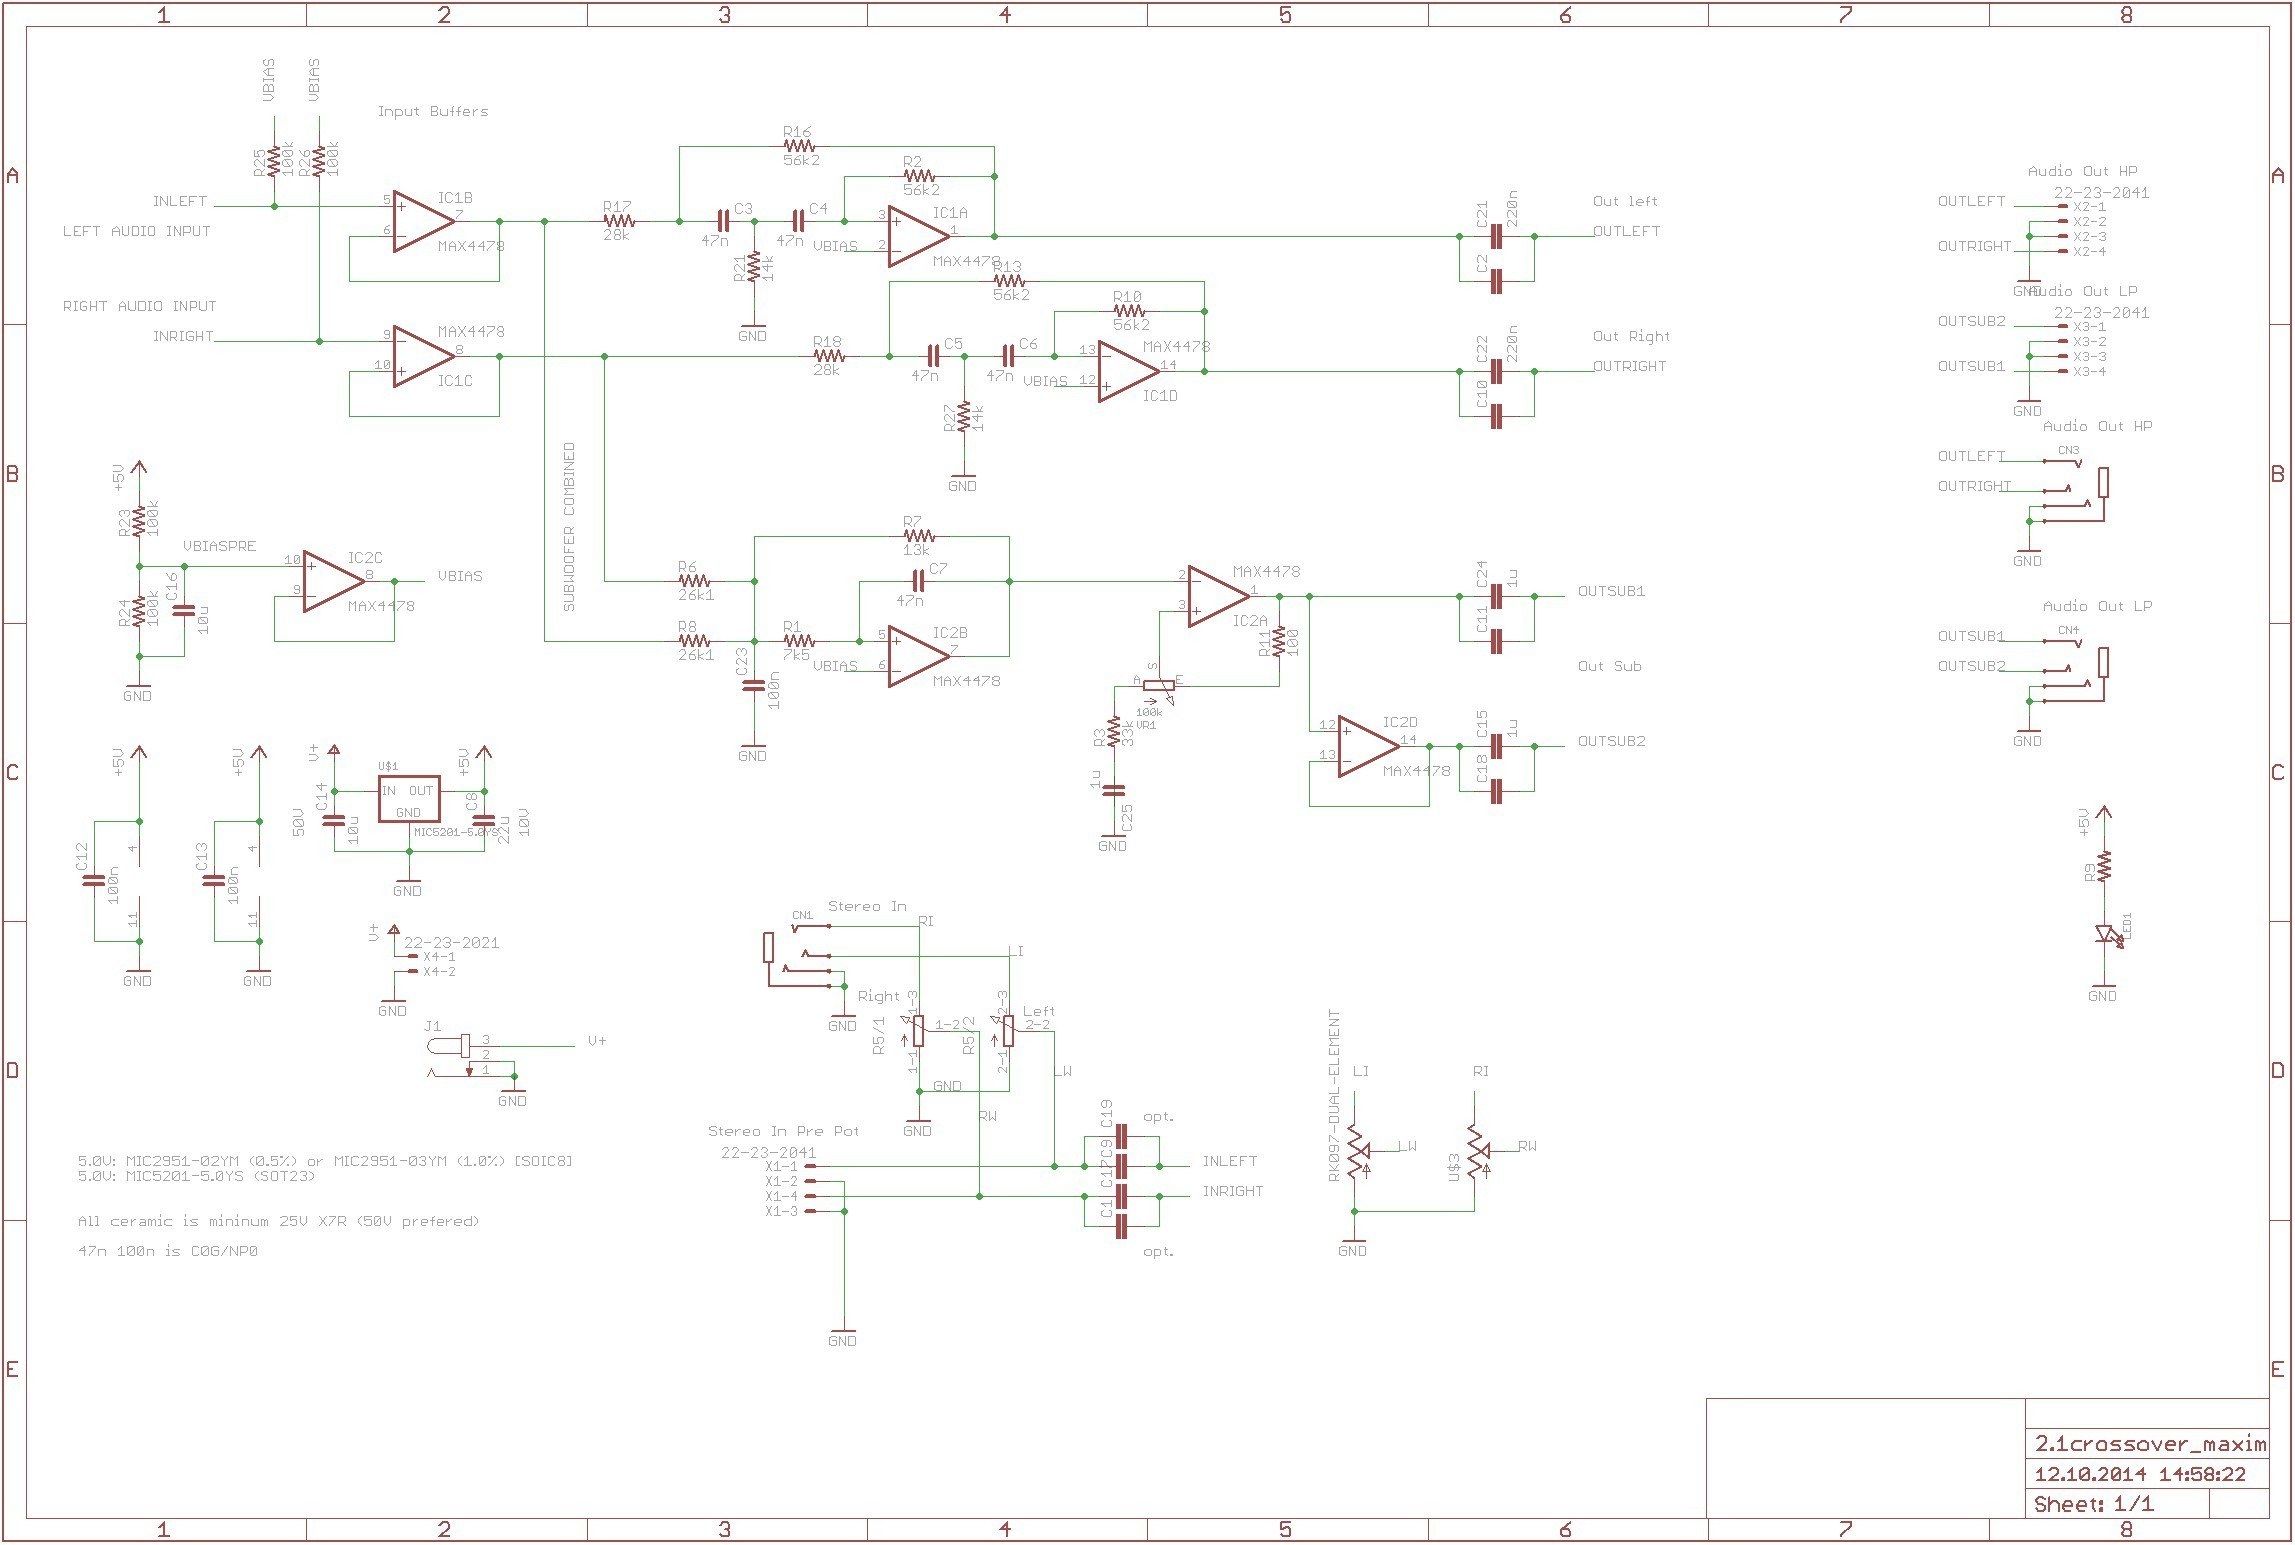 kitchen electrical wiring diagram Download-Kitchen Electrical Wiring Diagram Aktive Crossoverfrequenzweiche Mit Max4478 360customs Crossover Schematic Rev 0d Wiring Lighting 11-c